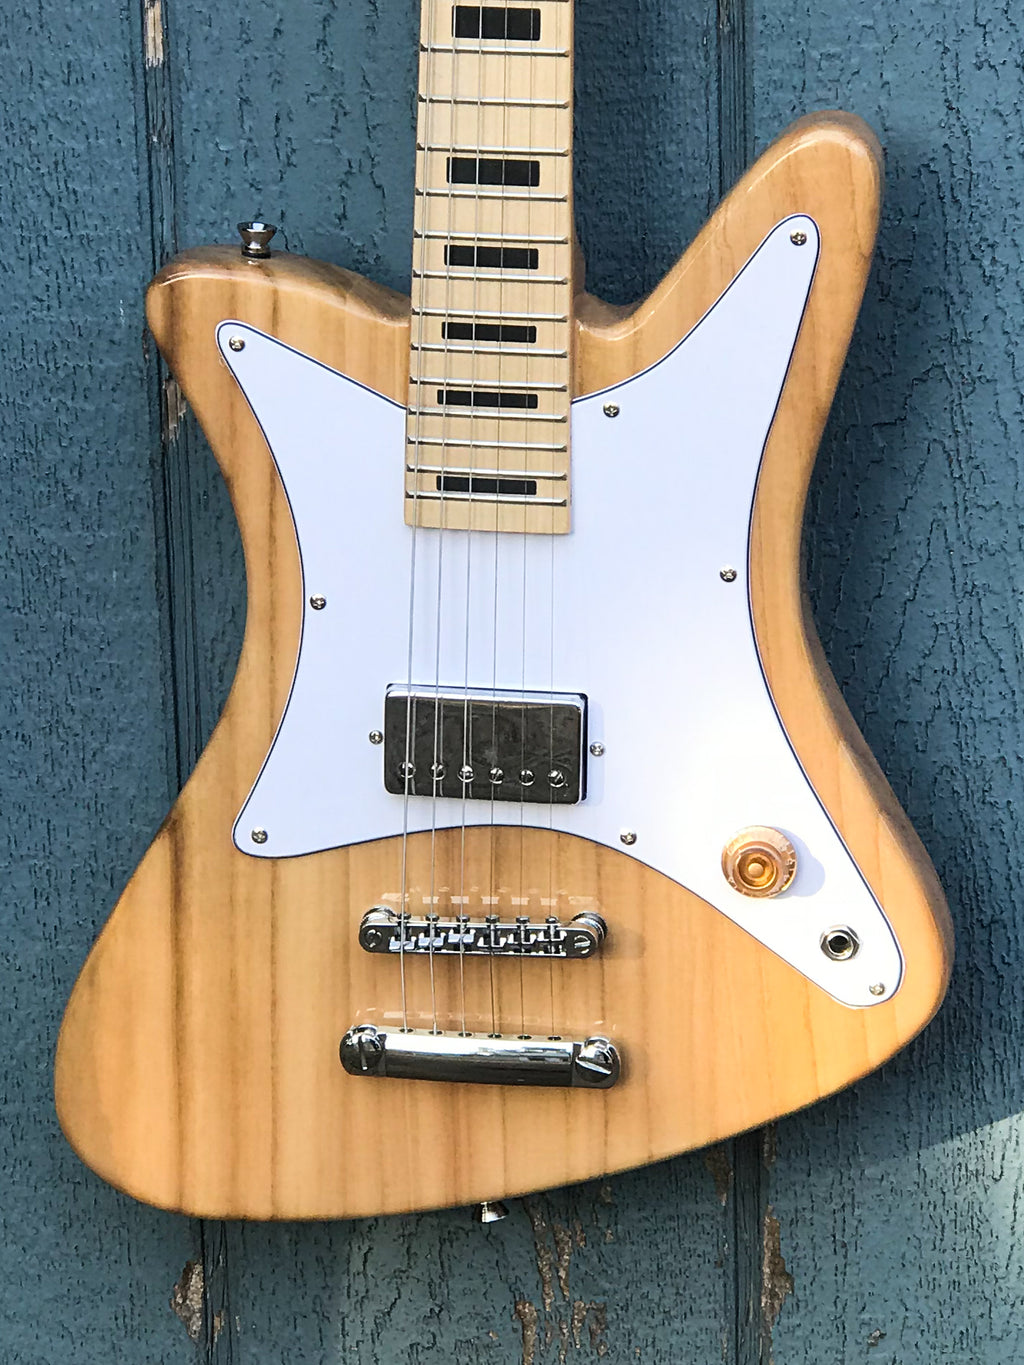 THE PAINTED LADY NATURAL 2020 - Goldfinch Guitars